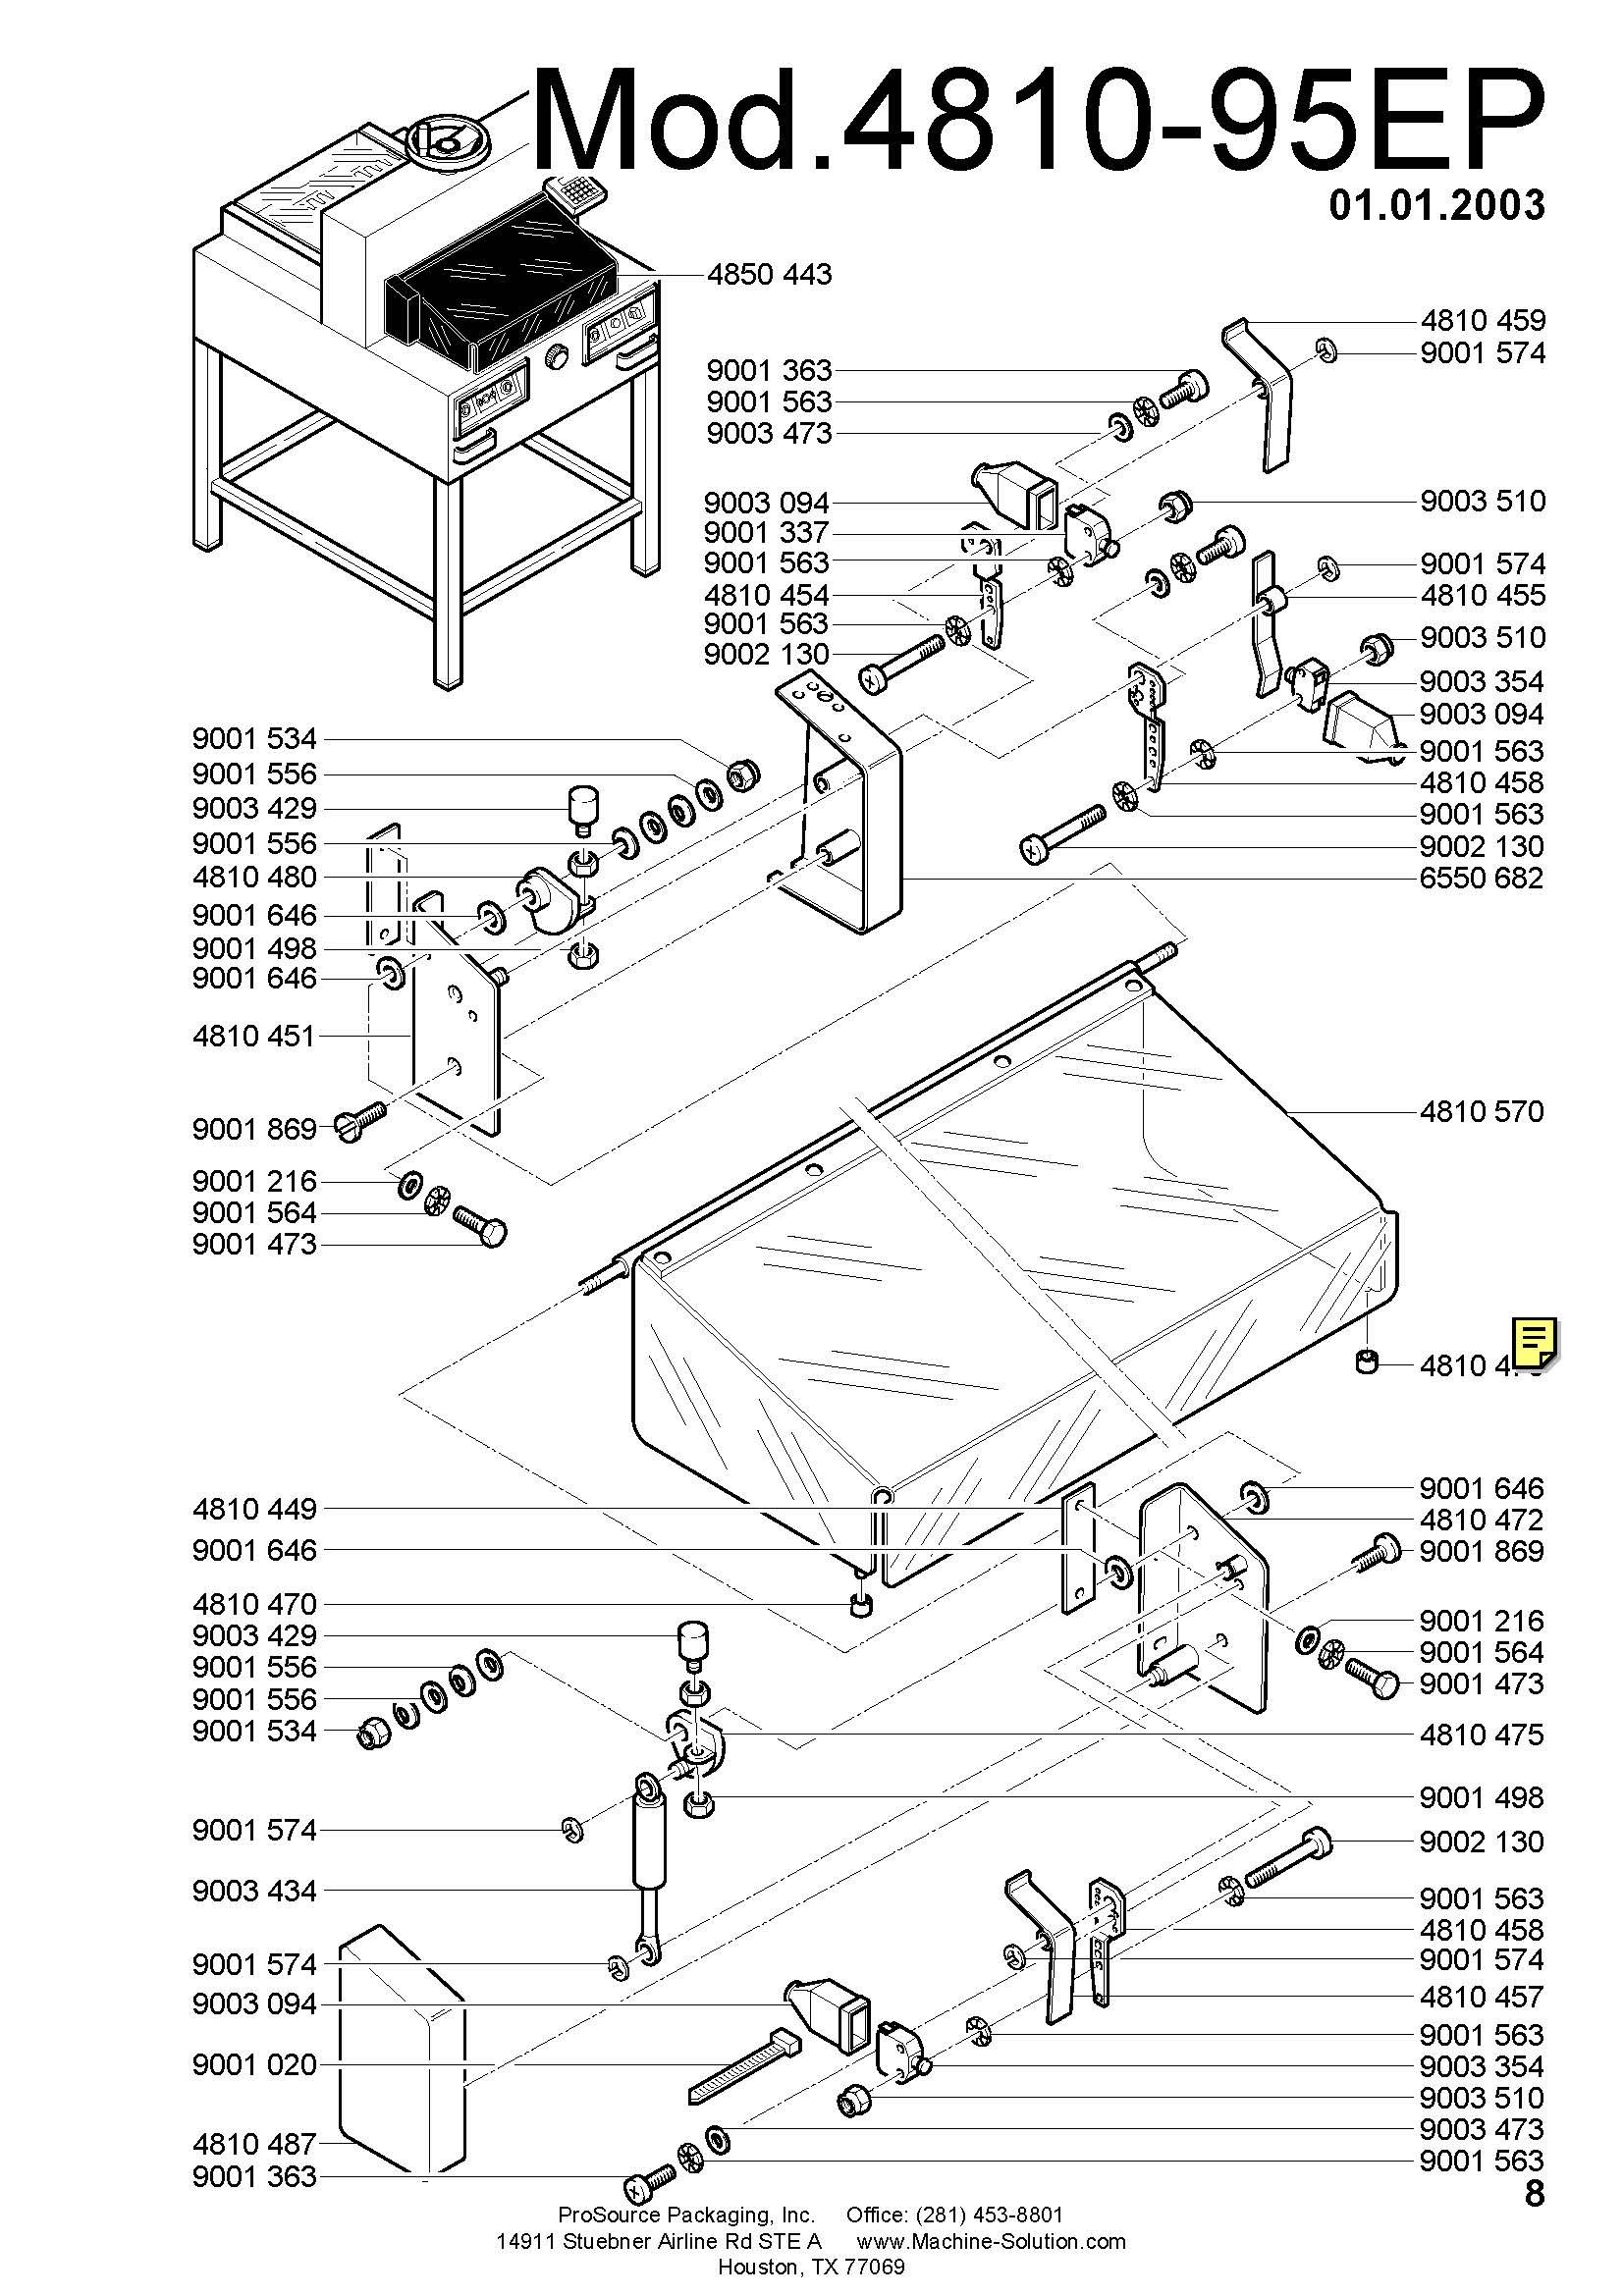 p 0900c152800ad9ee with International 4700 Wiring Diagram Electric on 85 Toyota 4x4 Engine Diagram furthermore 1991 Mitsubishi Eclipse Car Stereo Wiring Diagram as well 2008 Saturn Outlook Wiring Schematic likewise 03 Navigator Fuse Box Diagram as well International 4700 Wiring Diagram Electric.